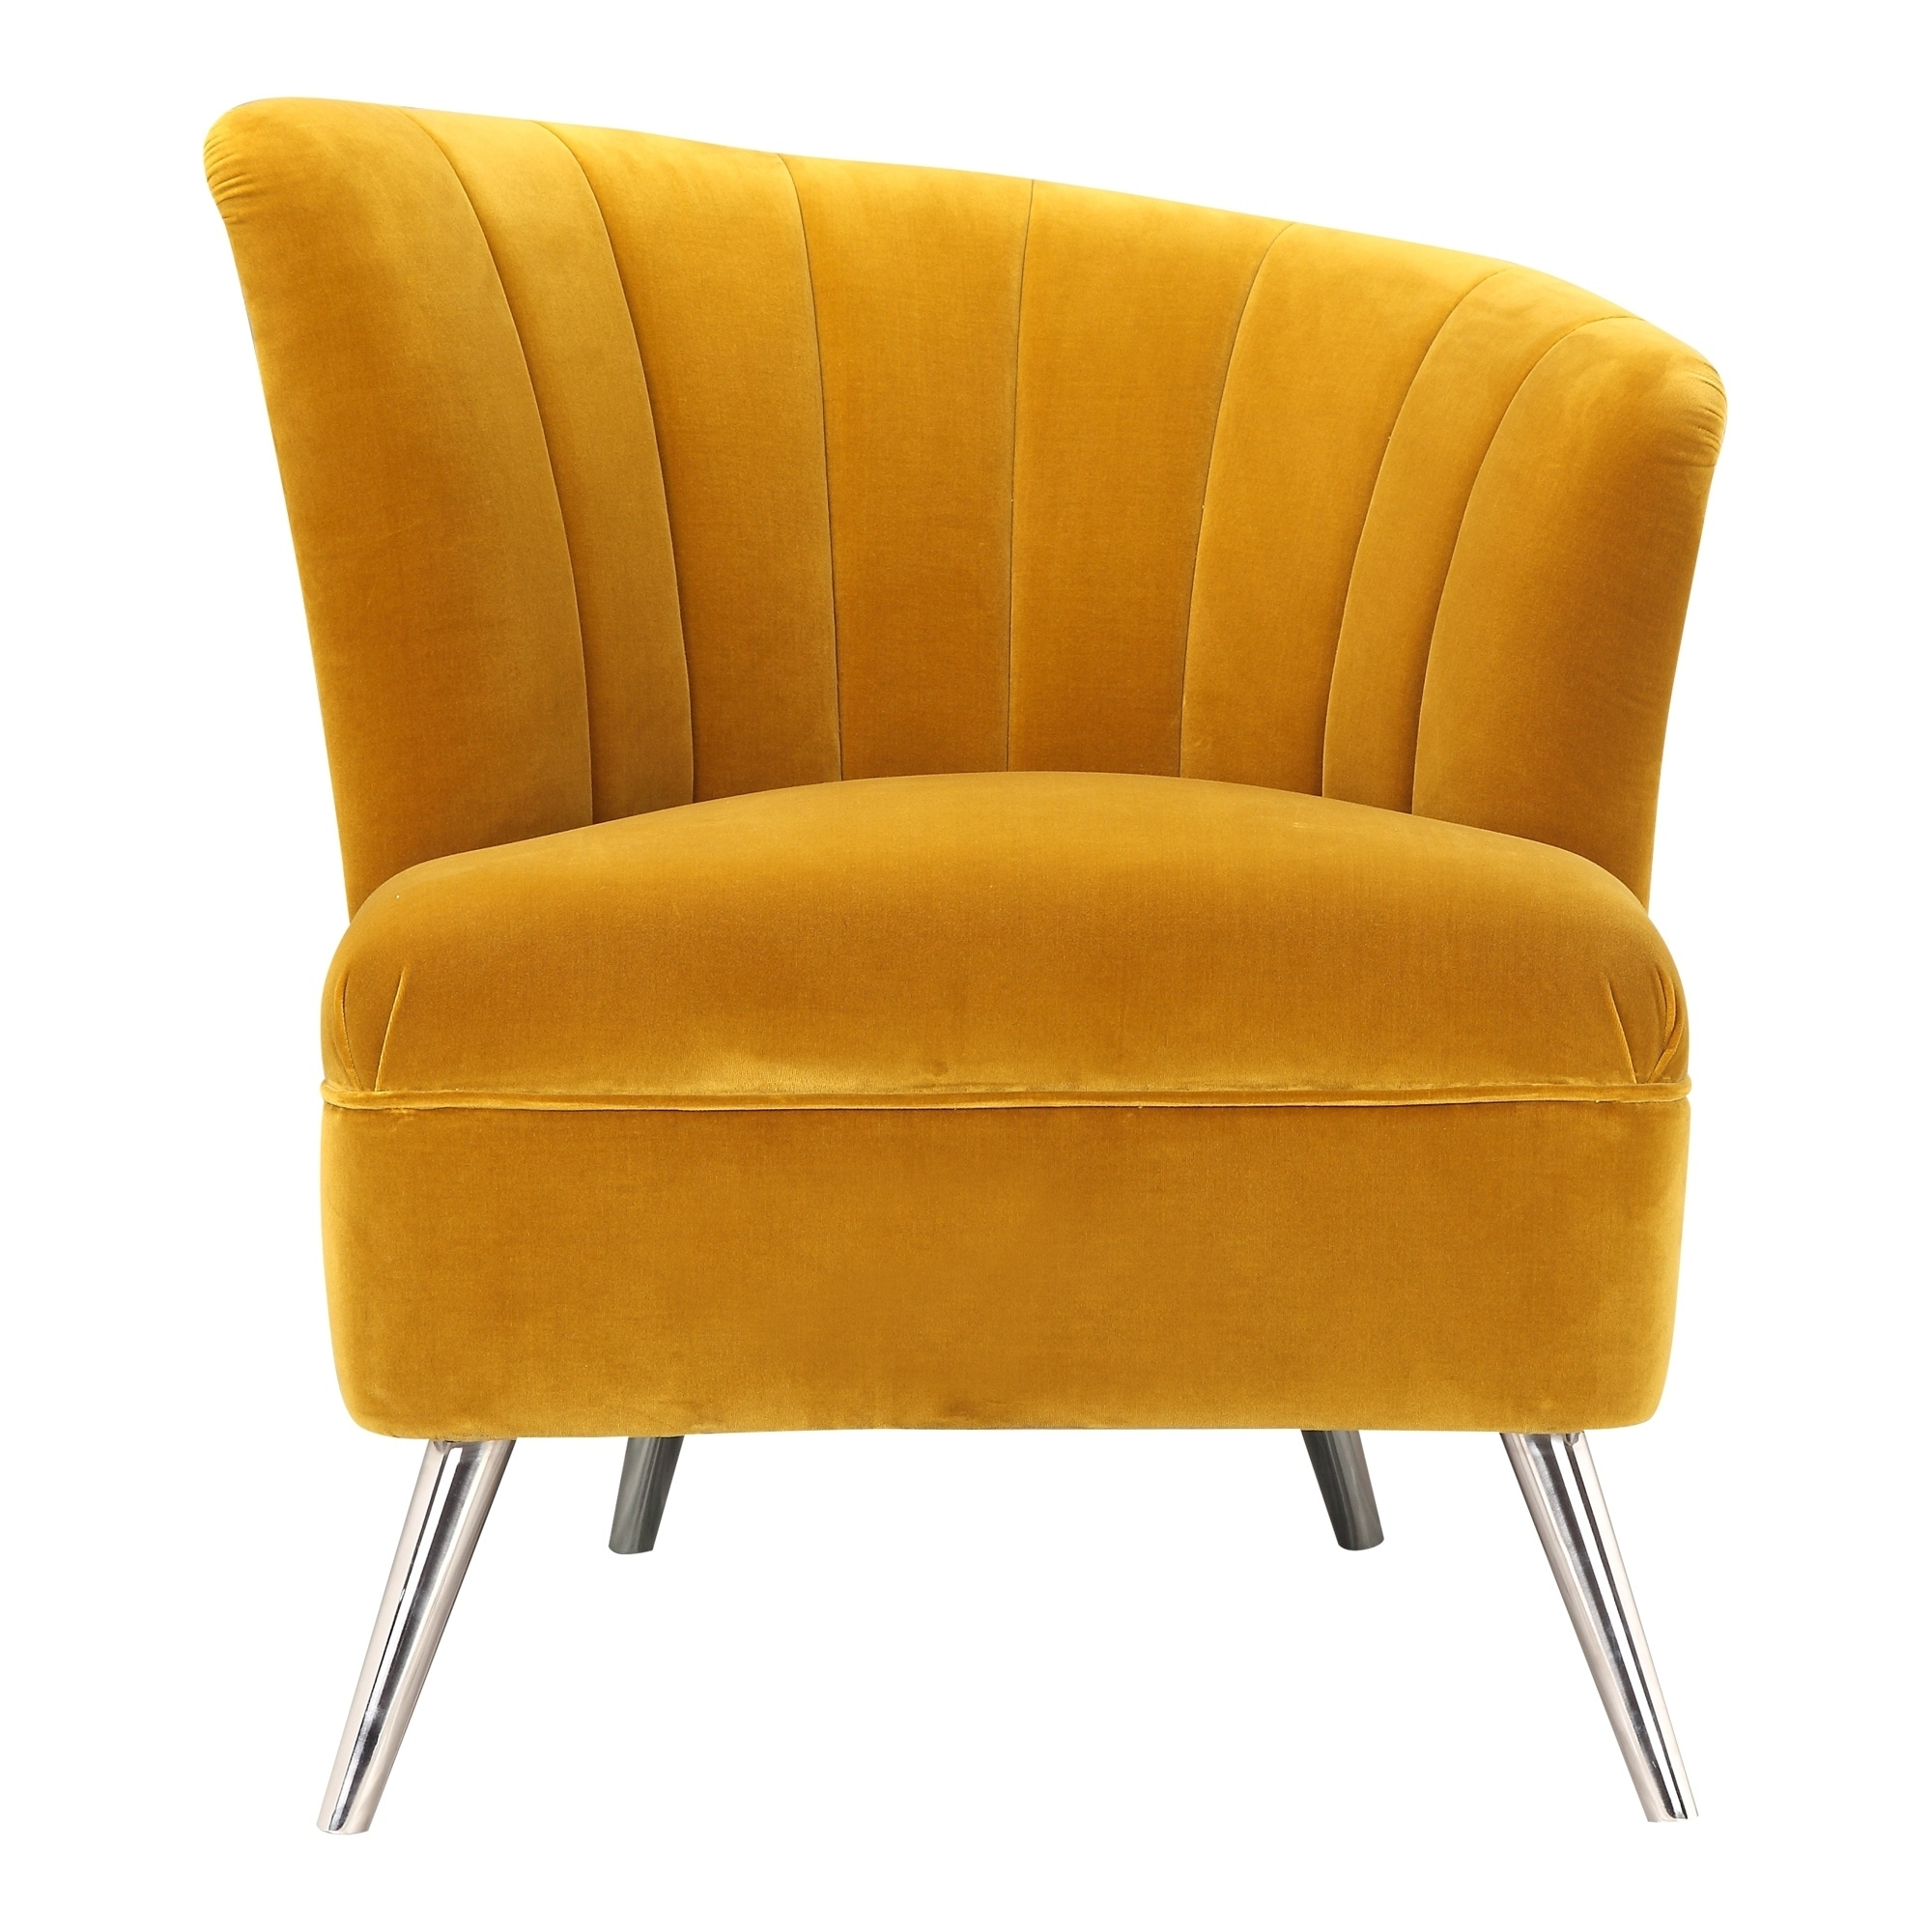 Shop Aurelle Home Retro Inspired Yellow Accent Chair Right On